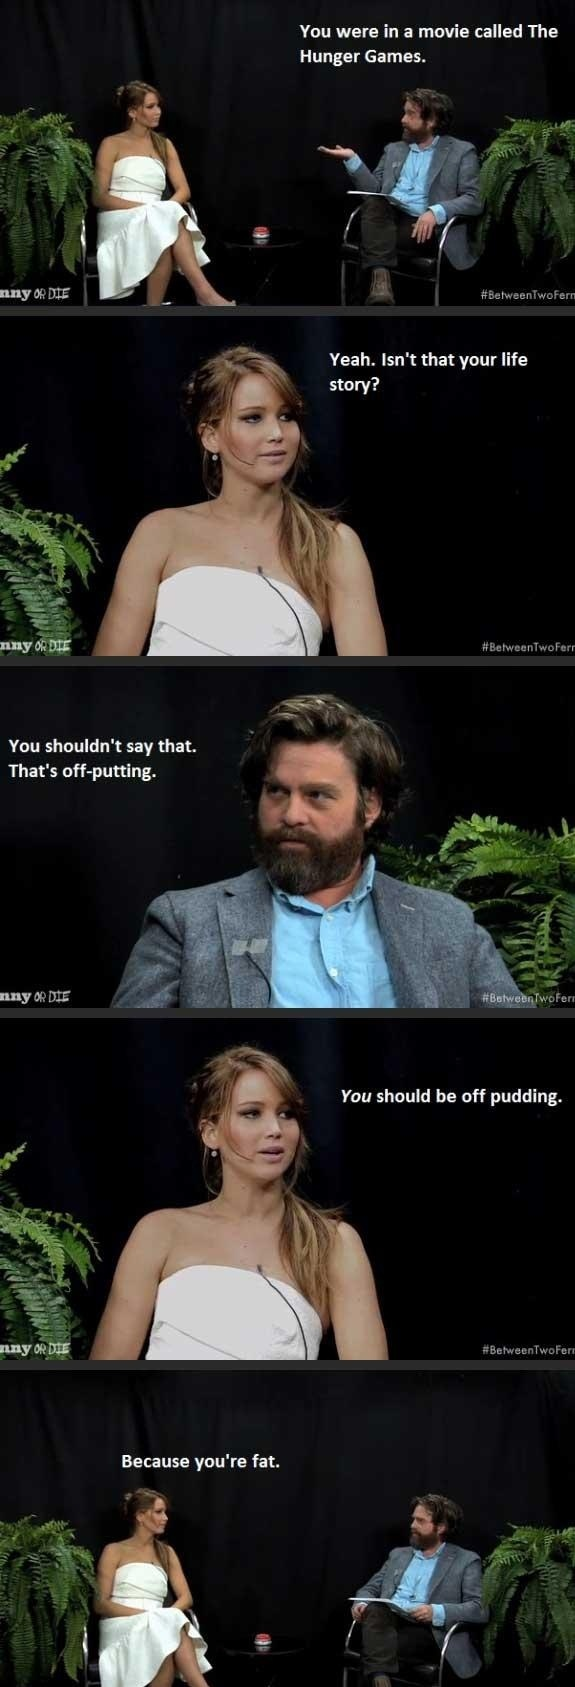 Jennifer Lawrence vs Zach Galifianakis     This is something i would say.  haha